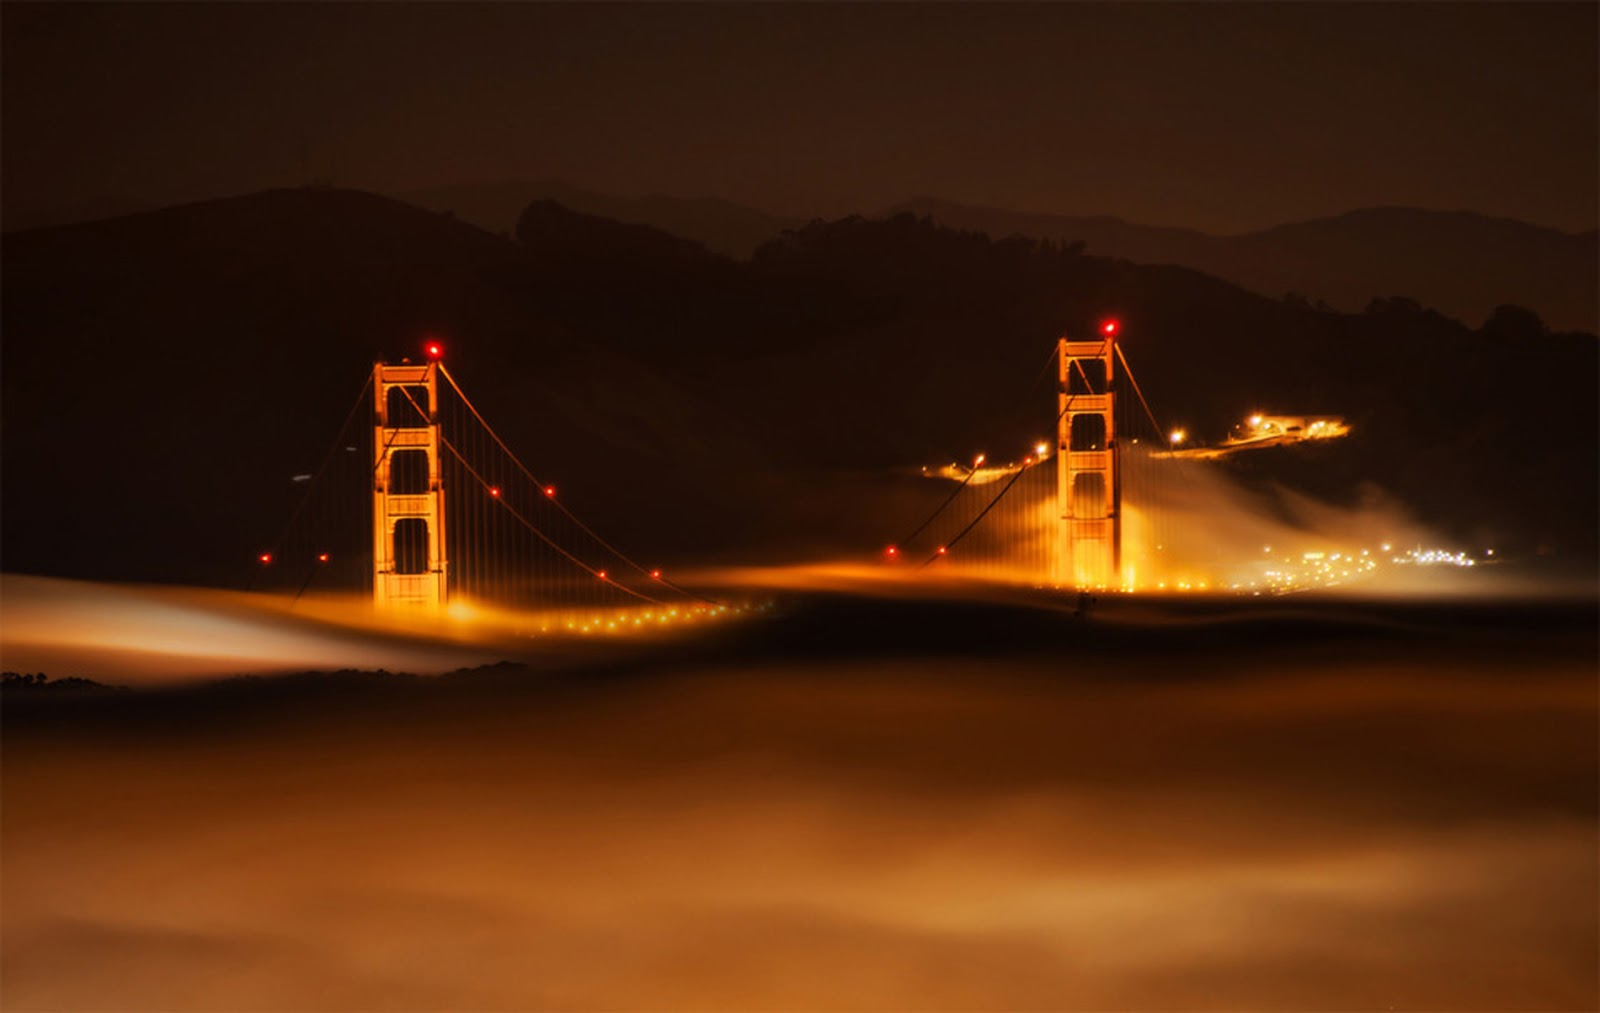 San Francisco HD Wallpaper HD Wallpaper Fog HD Wallpaper 1600x1013